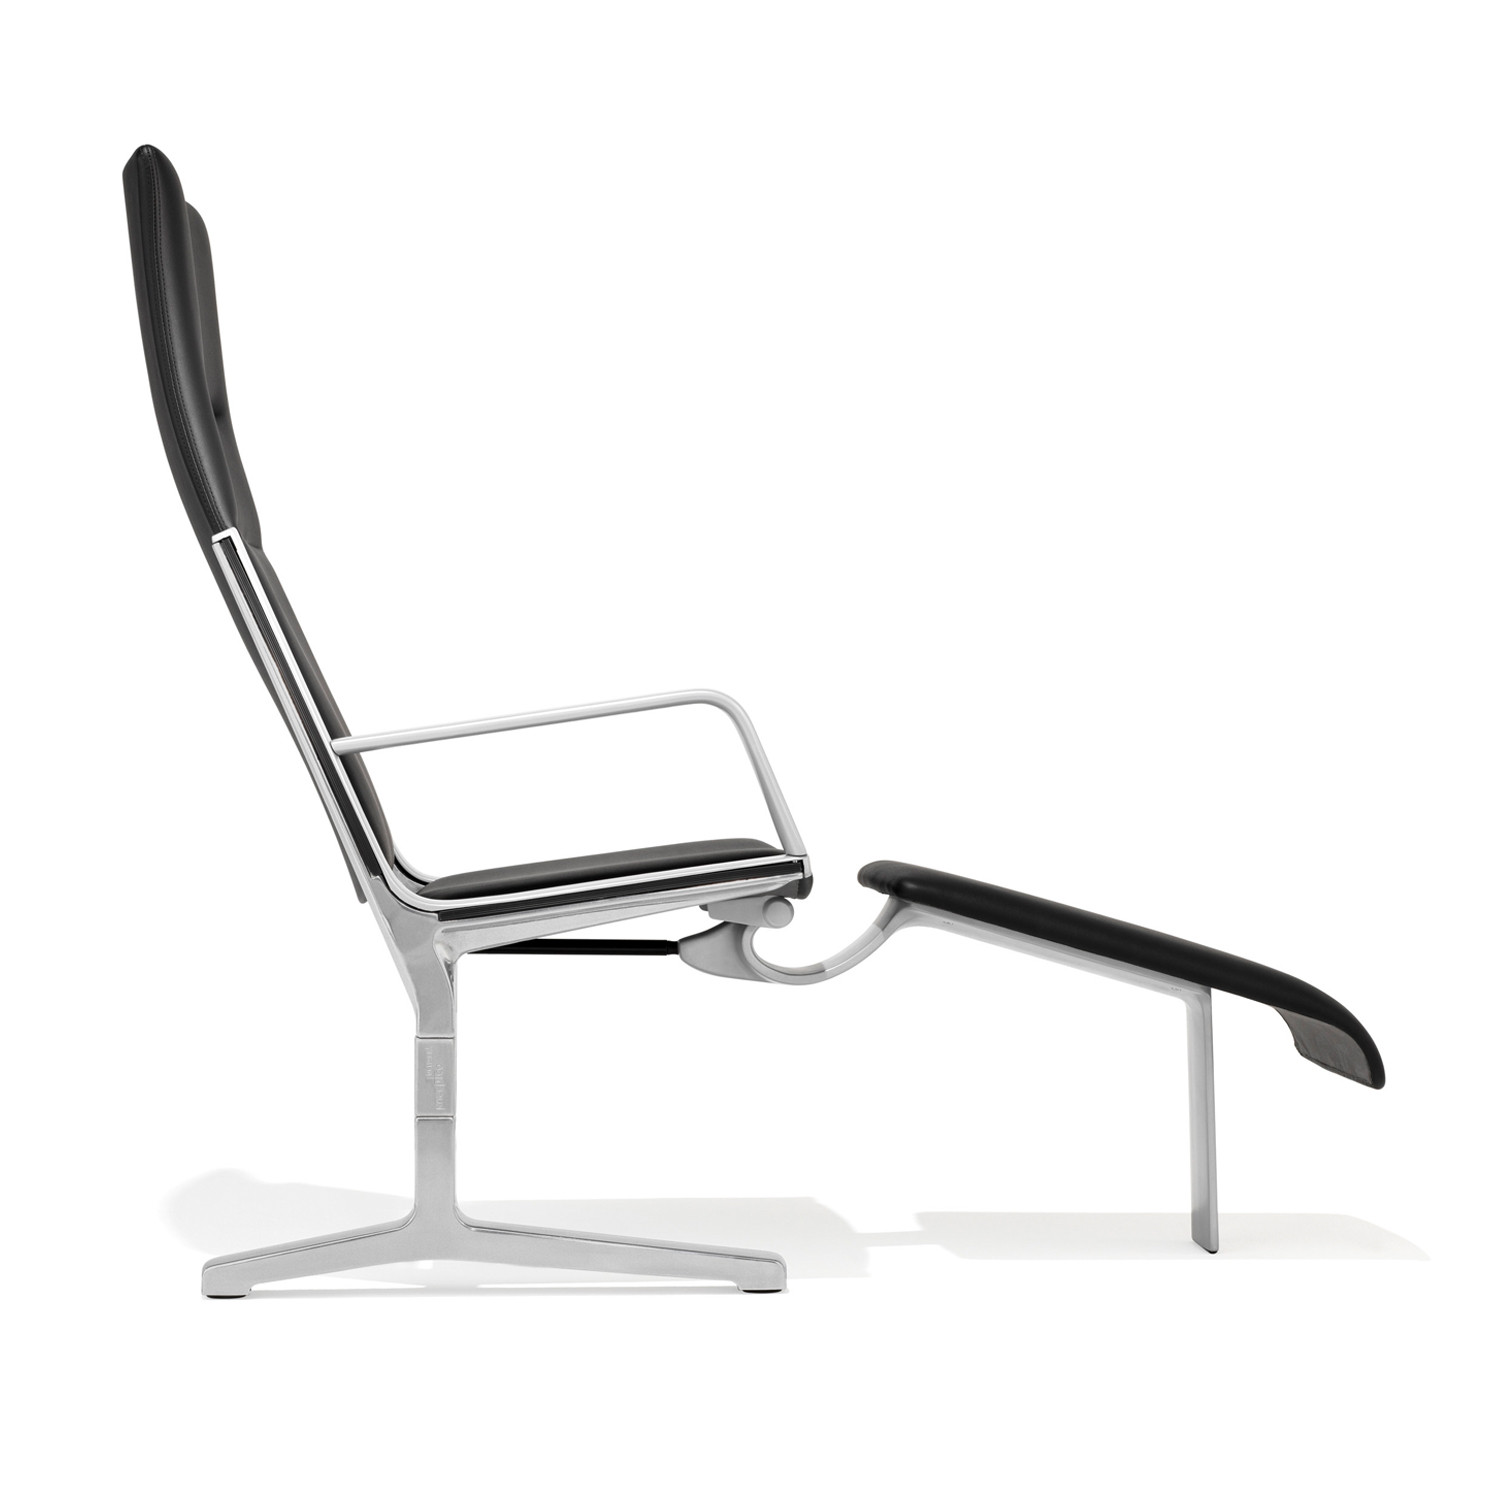 8000 Terminal Seat with high-backrest